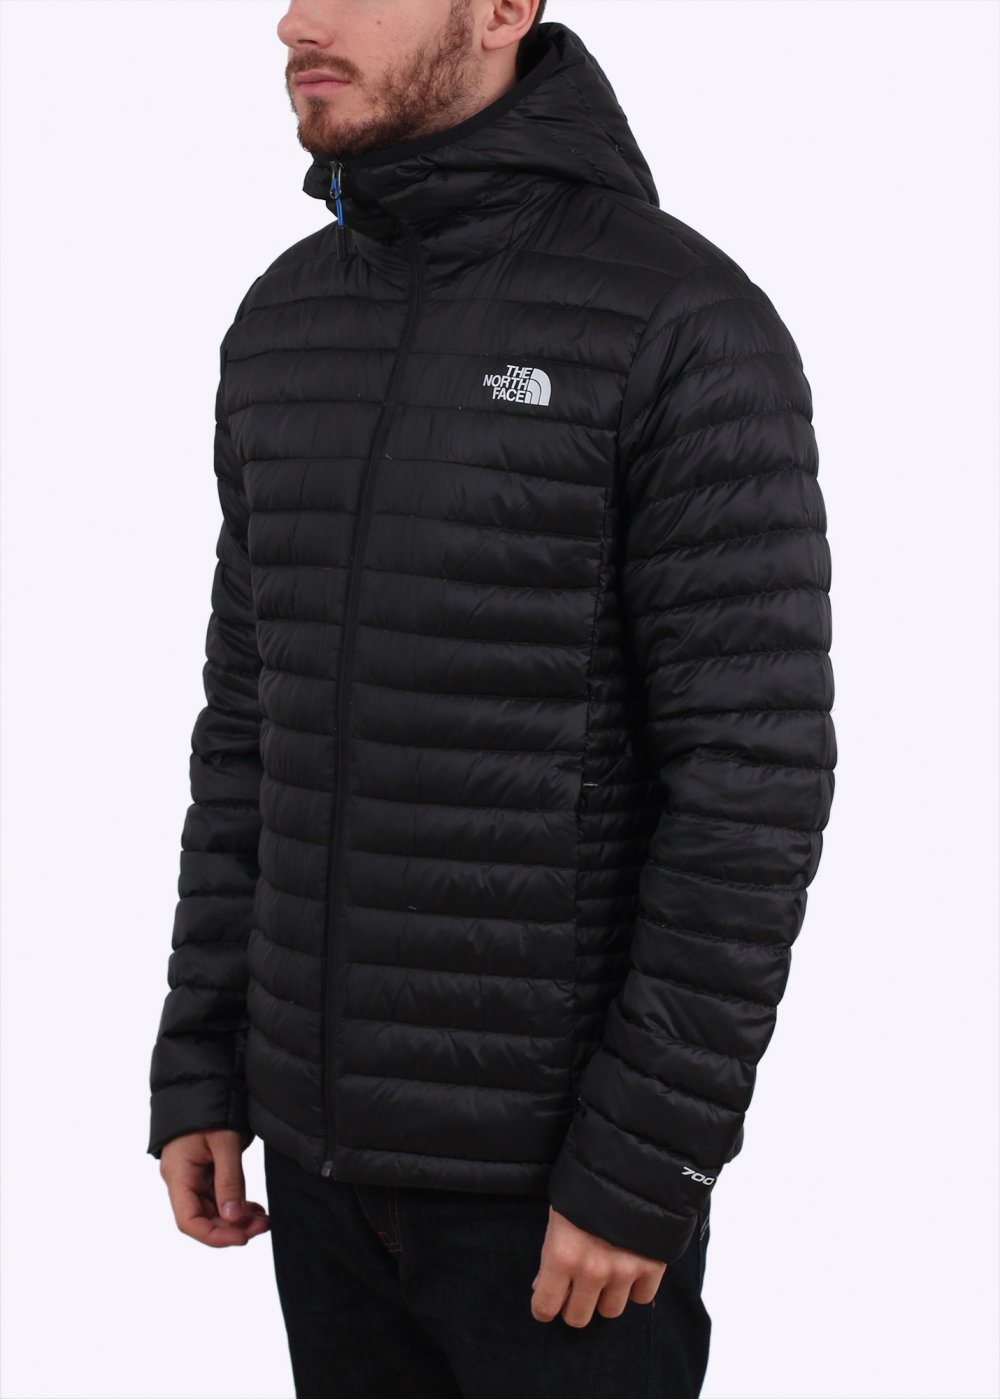 51459dacc The North Face Tonnerro Hooded Down Jacket - Black